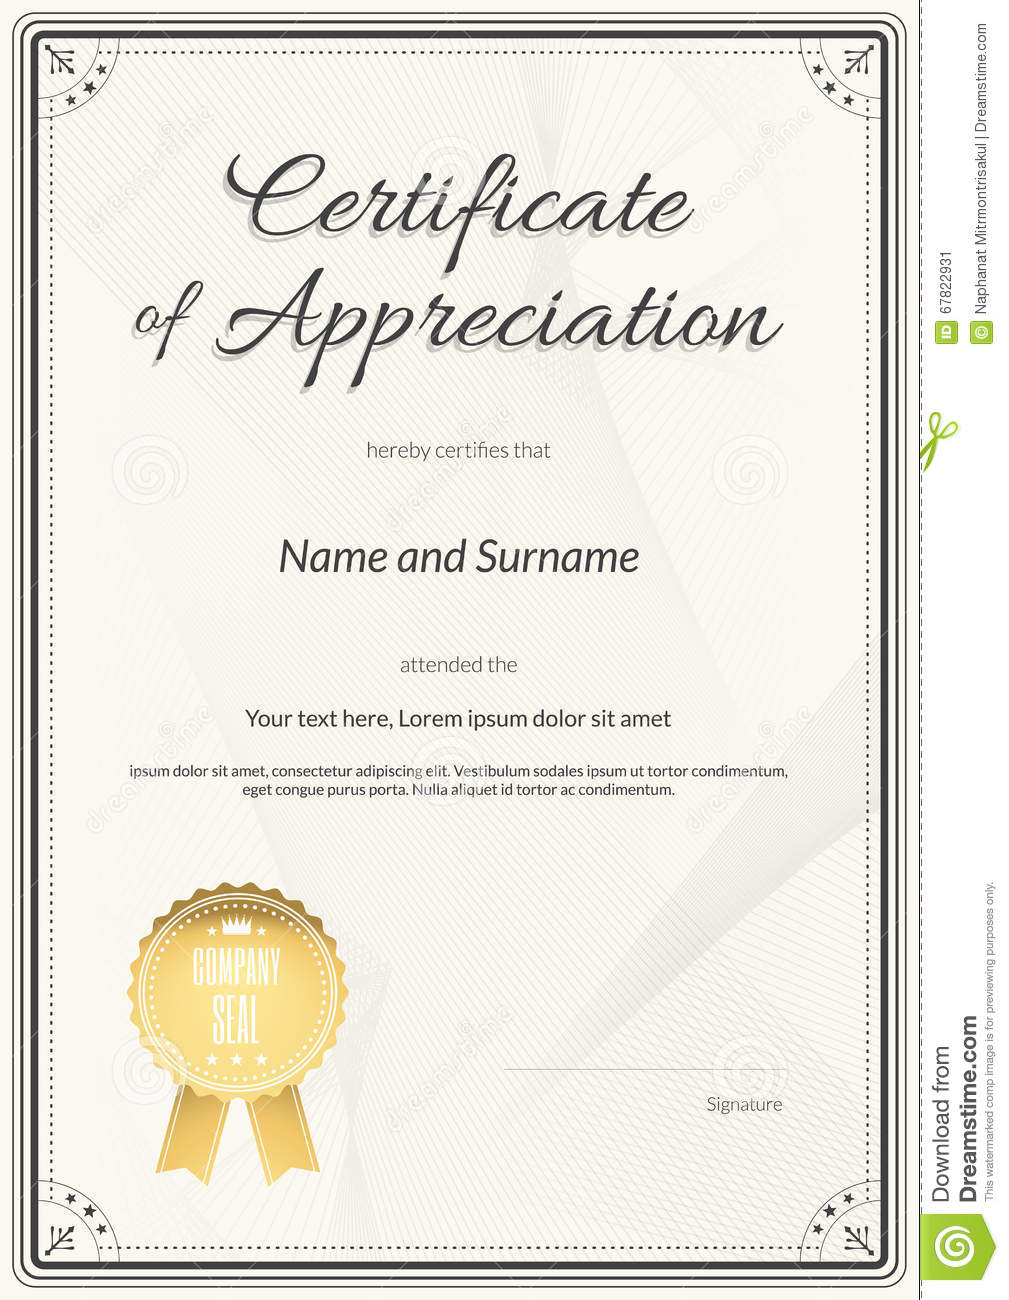 Certificate of appreciation template in vector stock vector certificate of appreciation template in vector yelopaper Choice Image